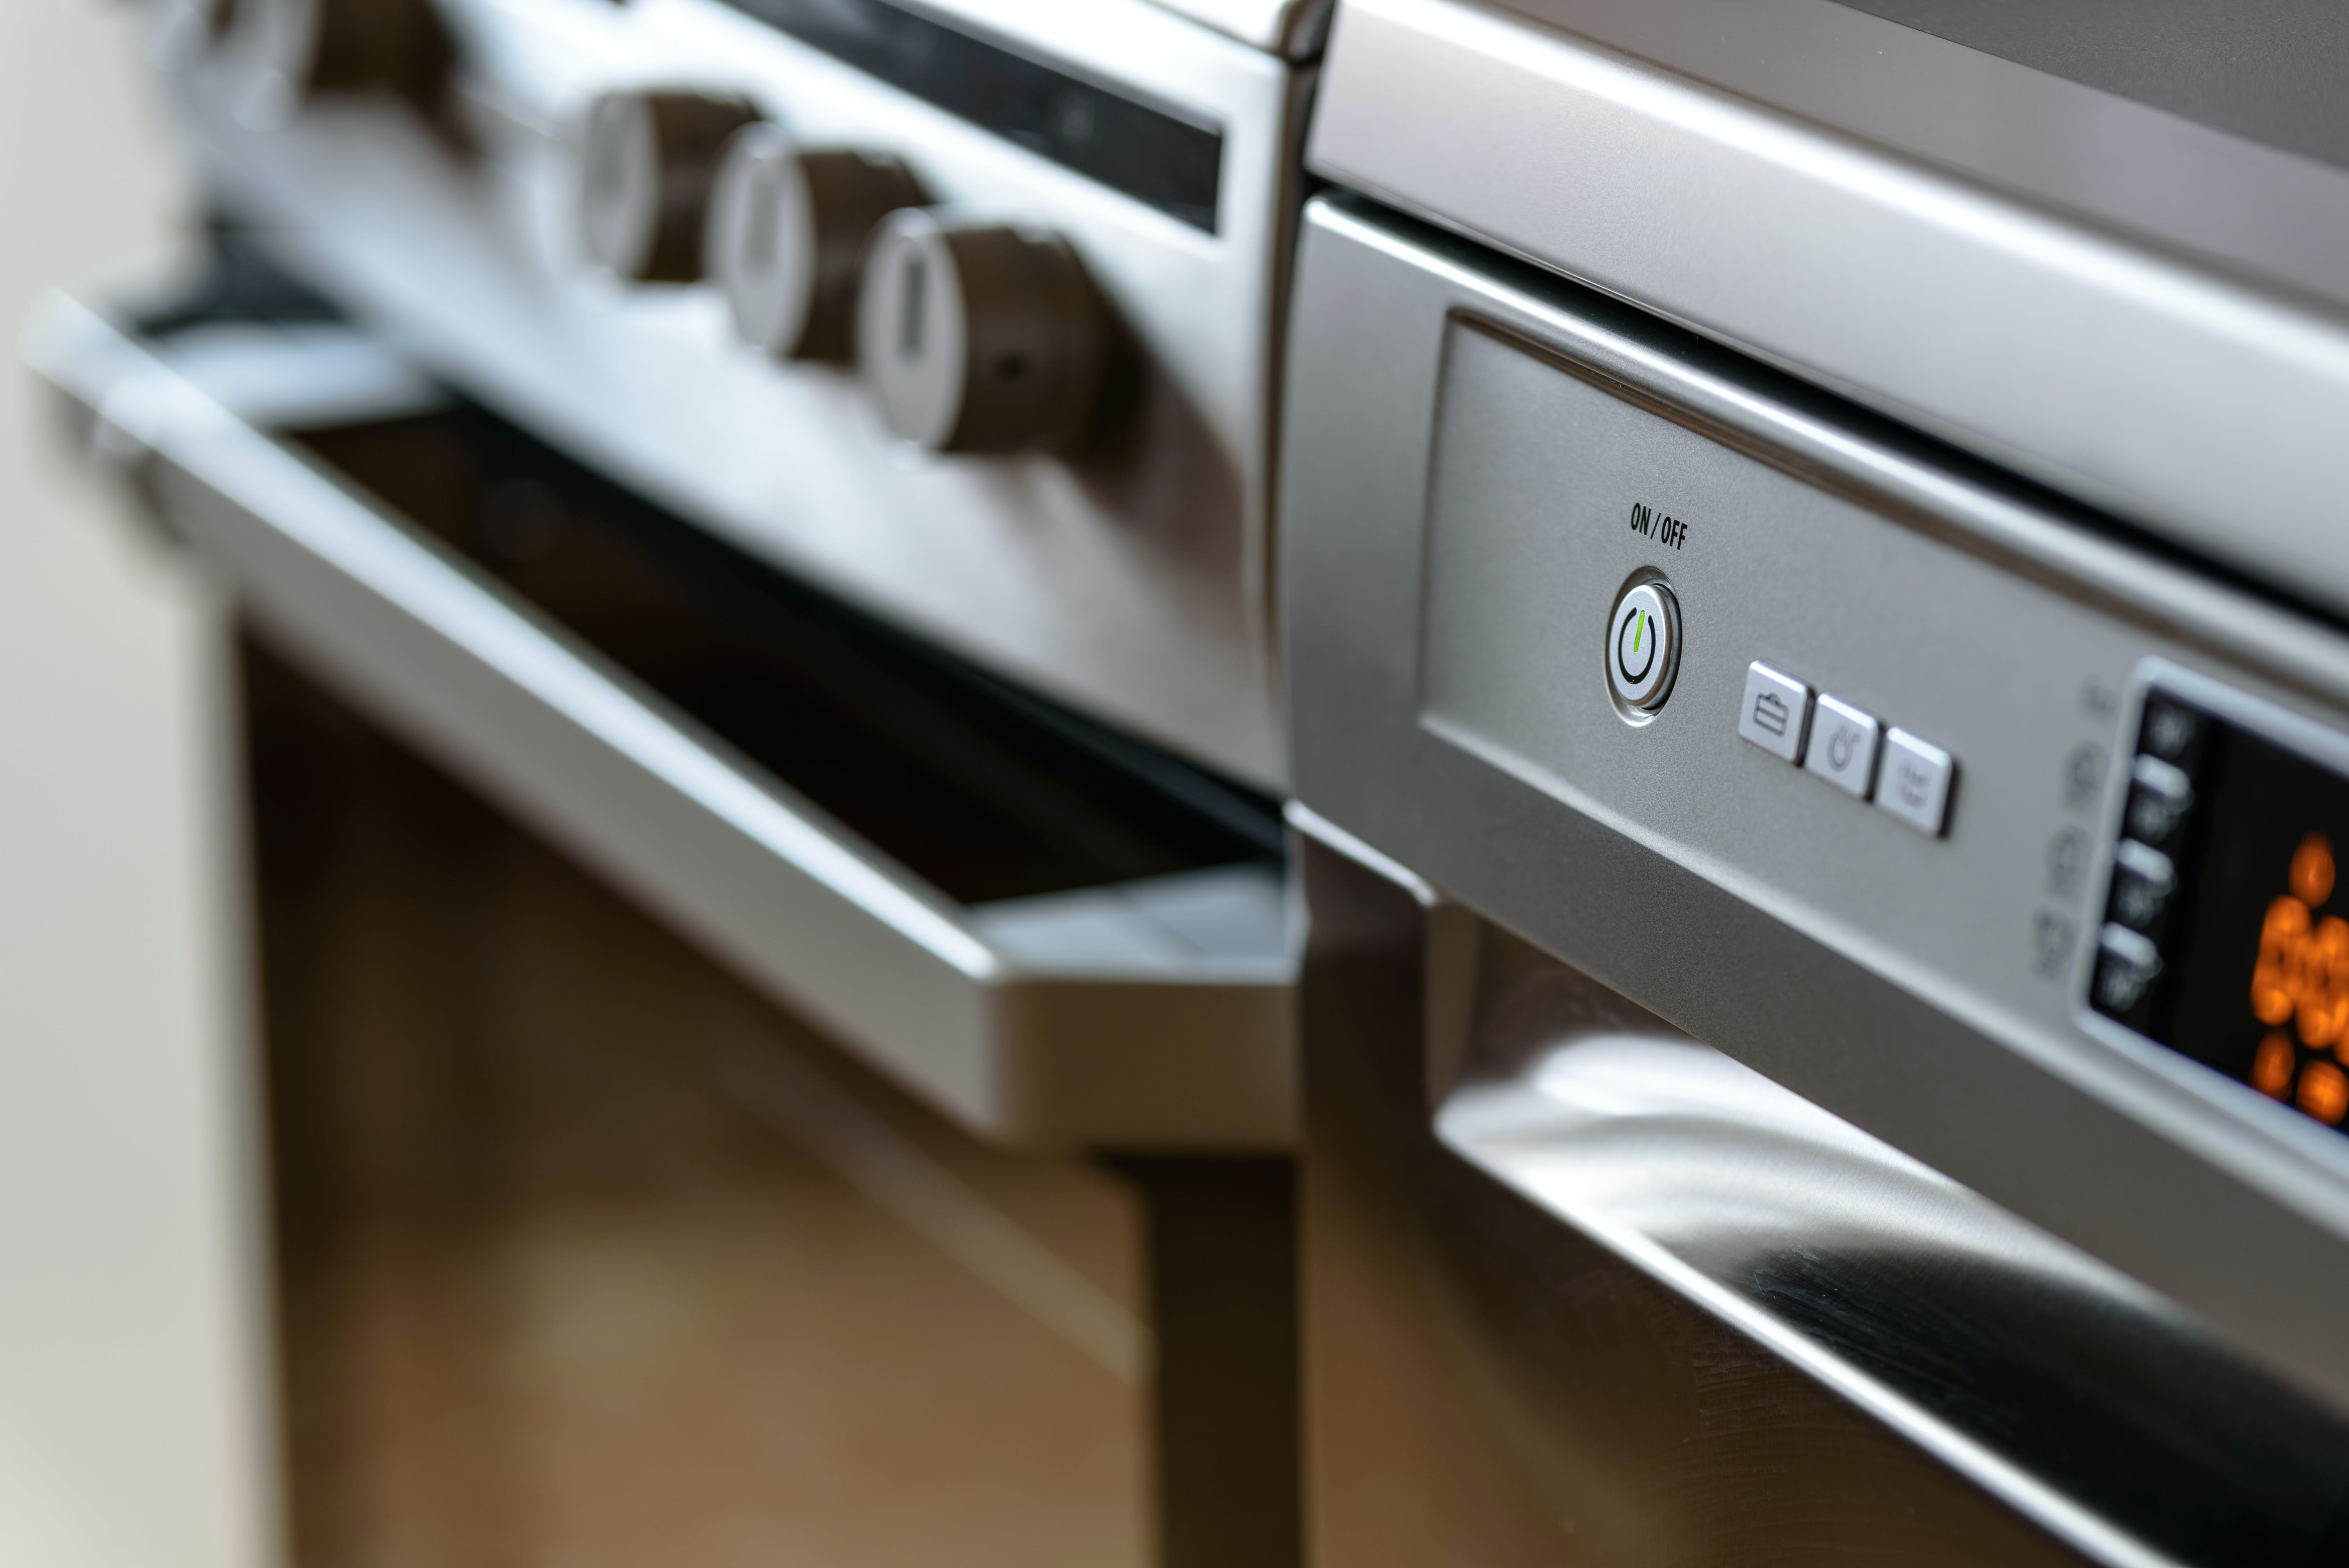 Free stock photo of metal, technology, display, kitchen